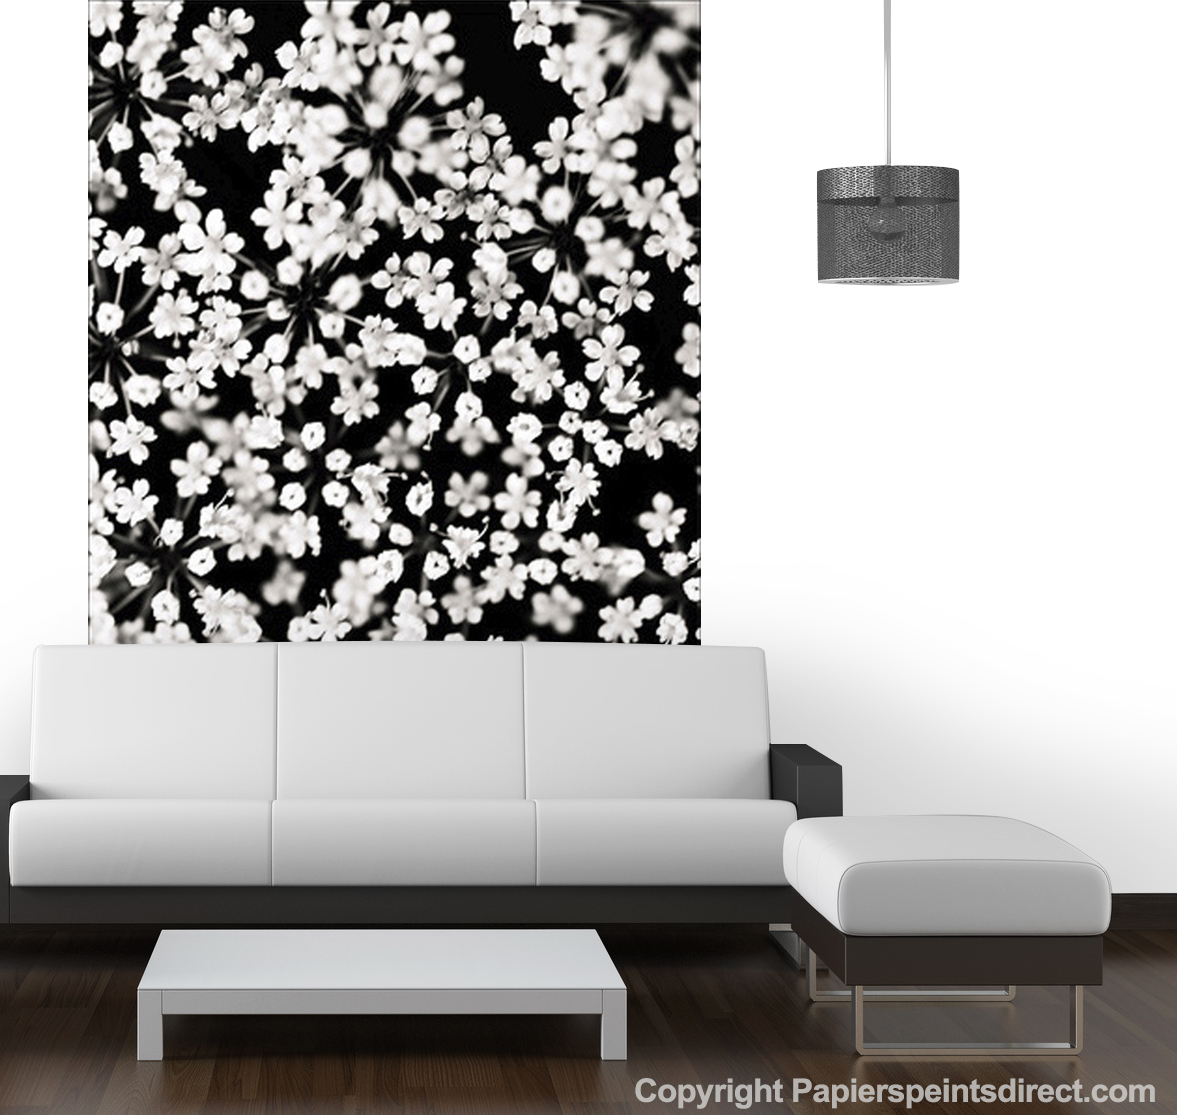 D coration murale murs d 39 image d coration murale le for Stickers murs deco